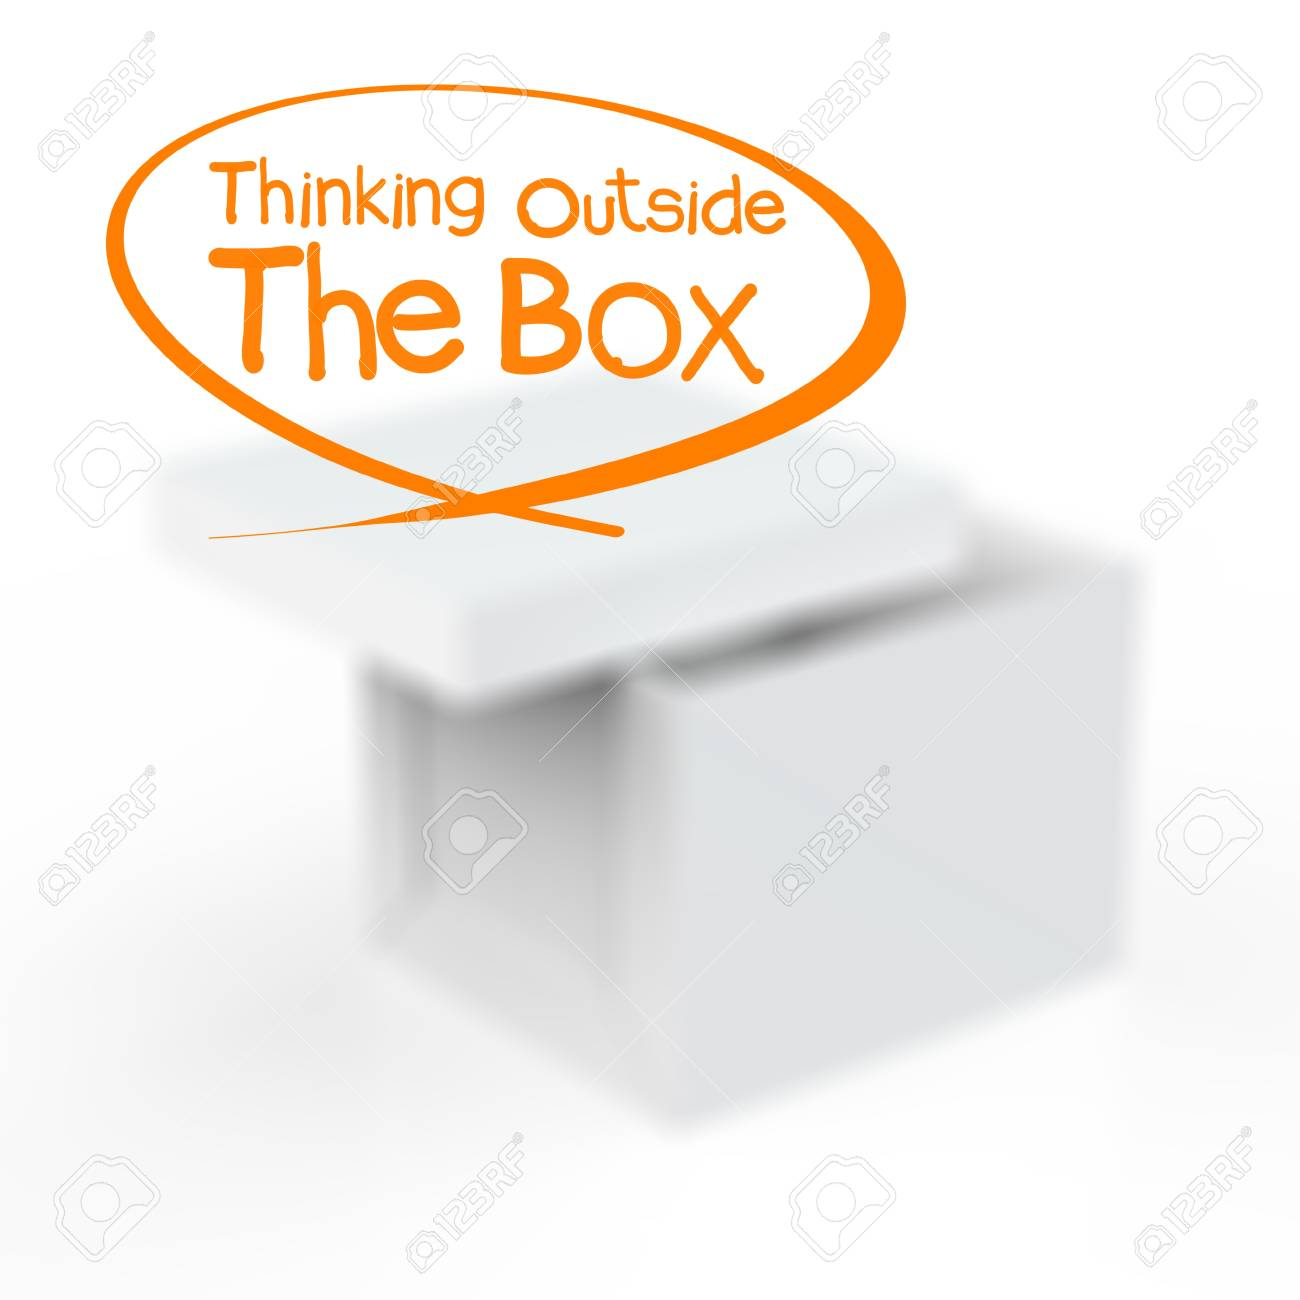 thinking outside the box as concept Stock Photo - 18237248